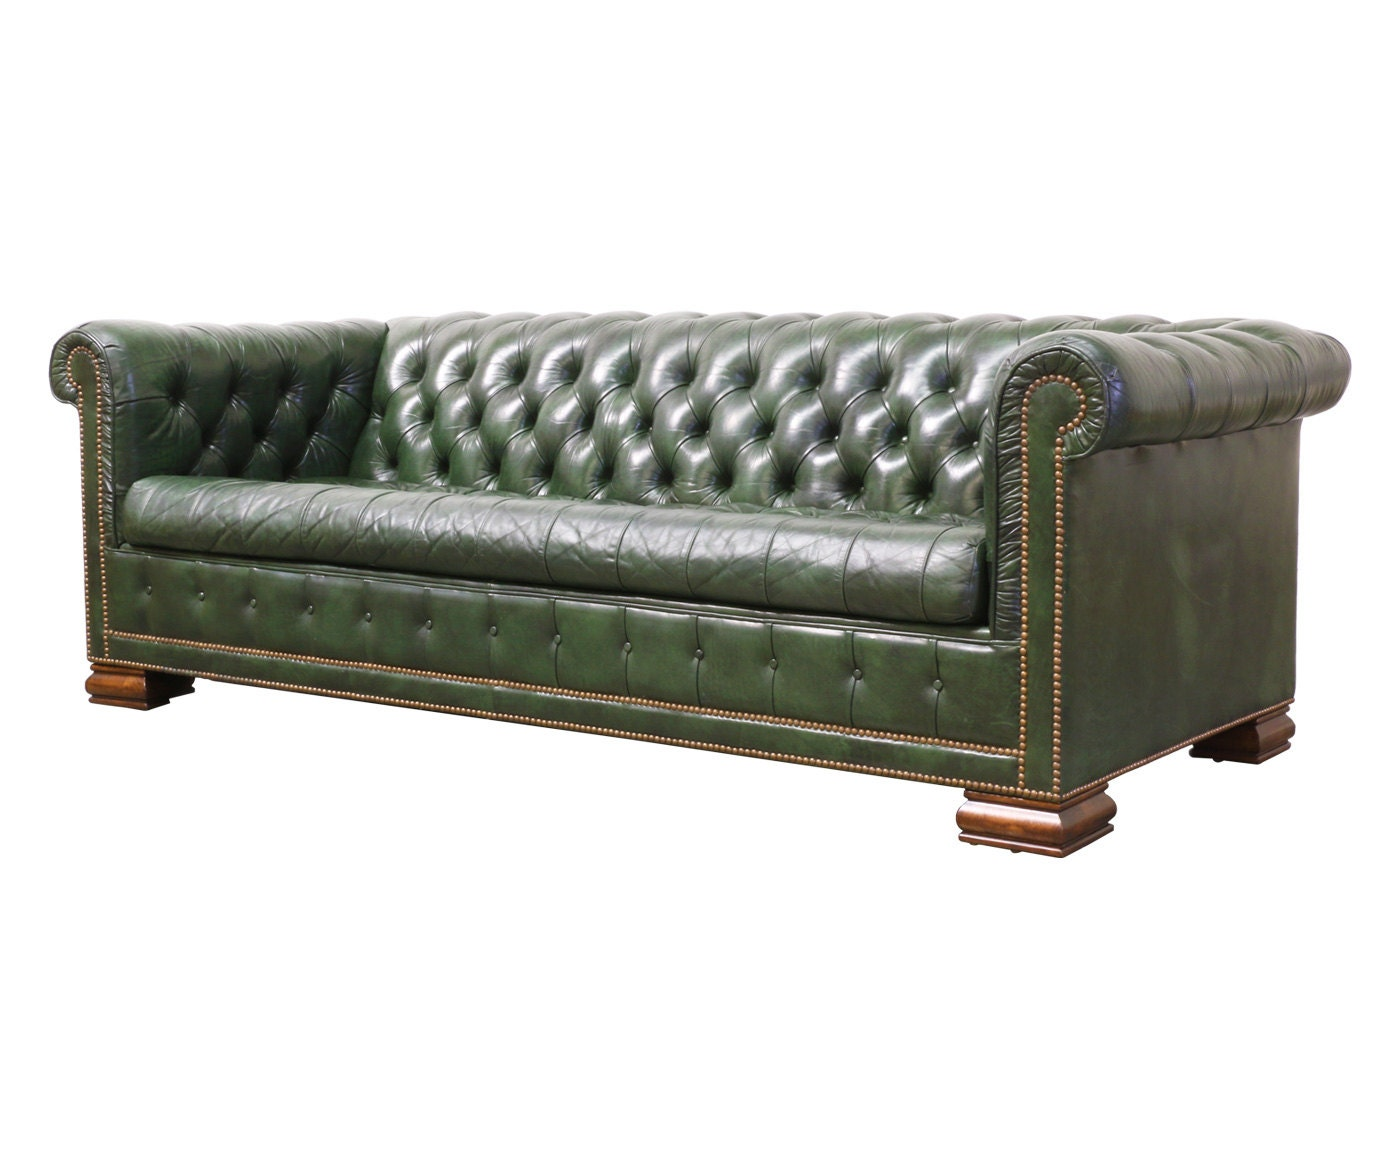 Chesterfield leather sofa bed vintage green leather chesterfield sofa bed by danishmodernla Leather chesterfield loveseat